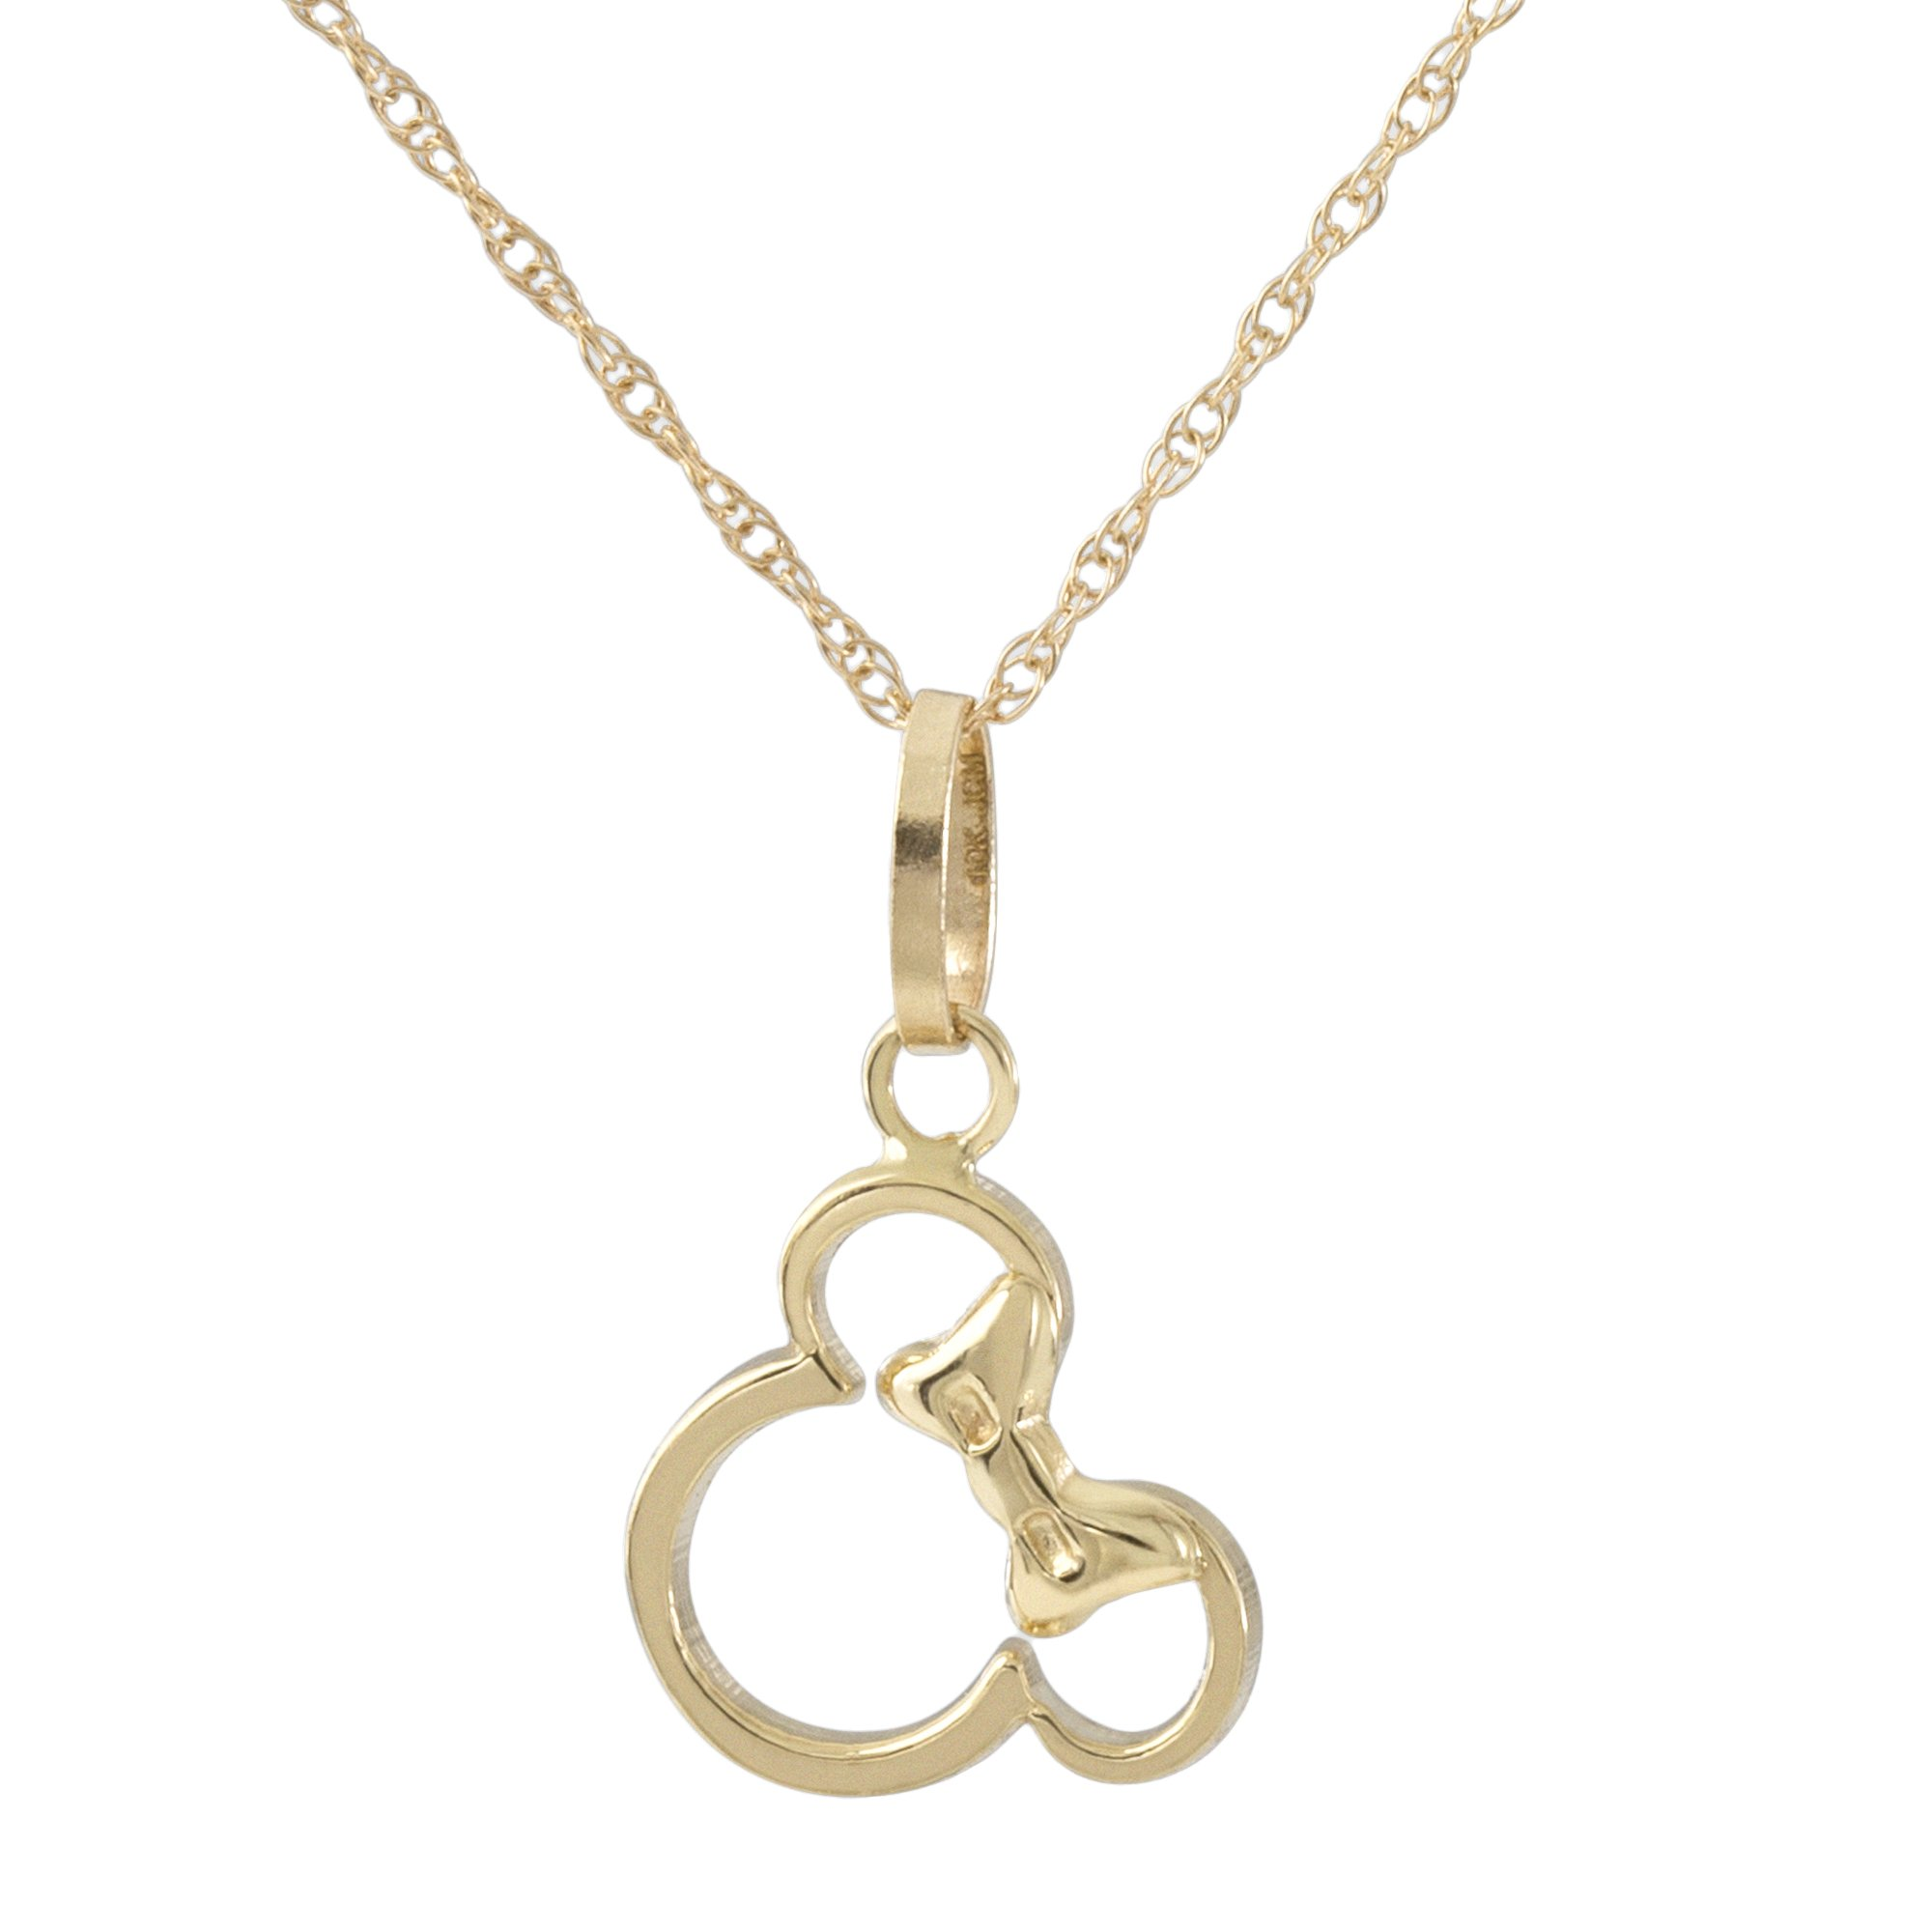 Disney Women's and Girls Jewelry Minnie Mouse 14k Yellow Gold Pendant Necklace,18'' Mickey's 90th Birthday Anniversary